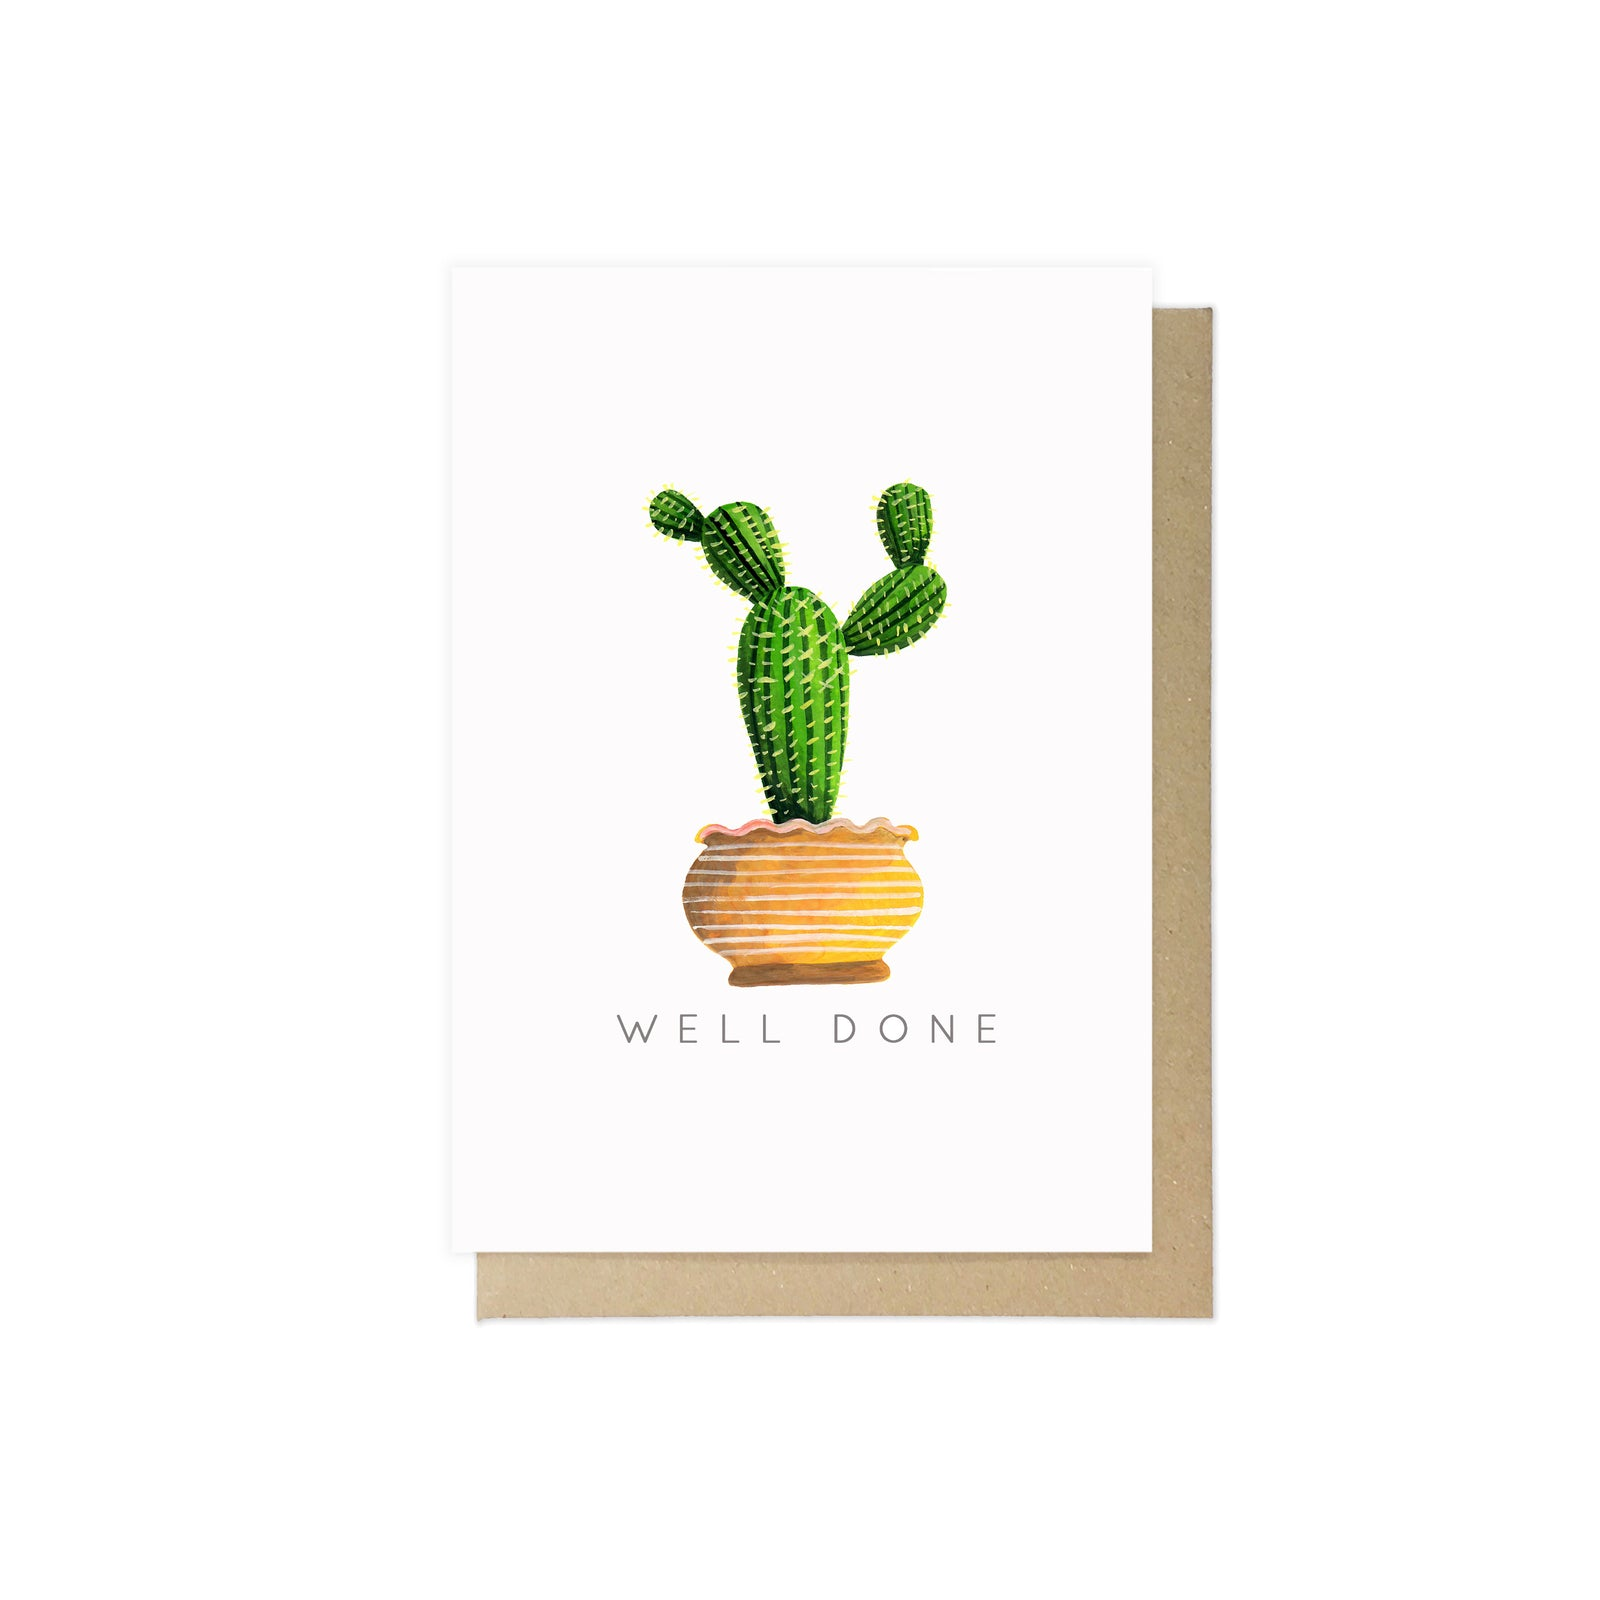 Cactus - Well Done by Lauren Radley